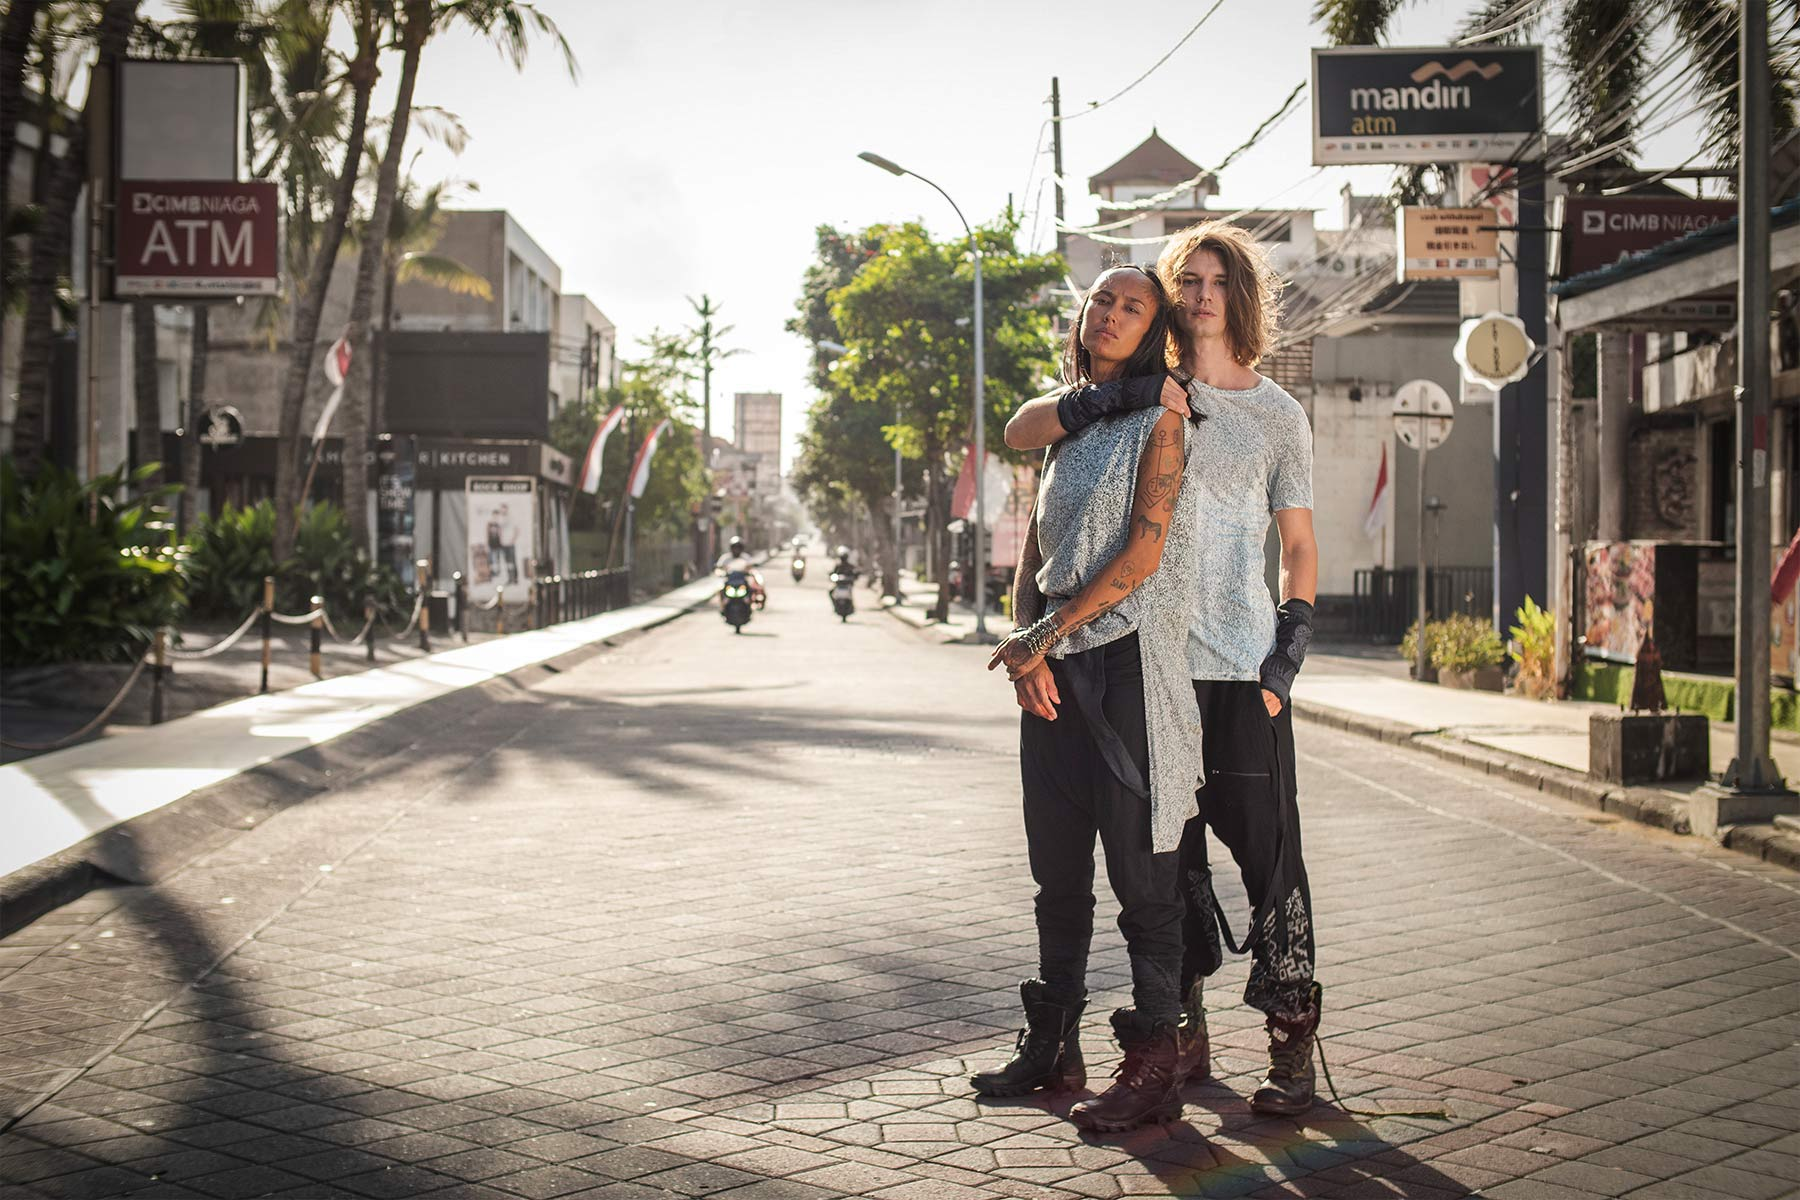 couple wearing Psylo fashion unisex clothing in Kuta's street, Bali